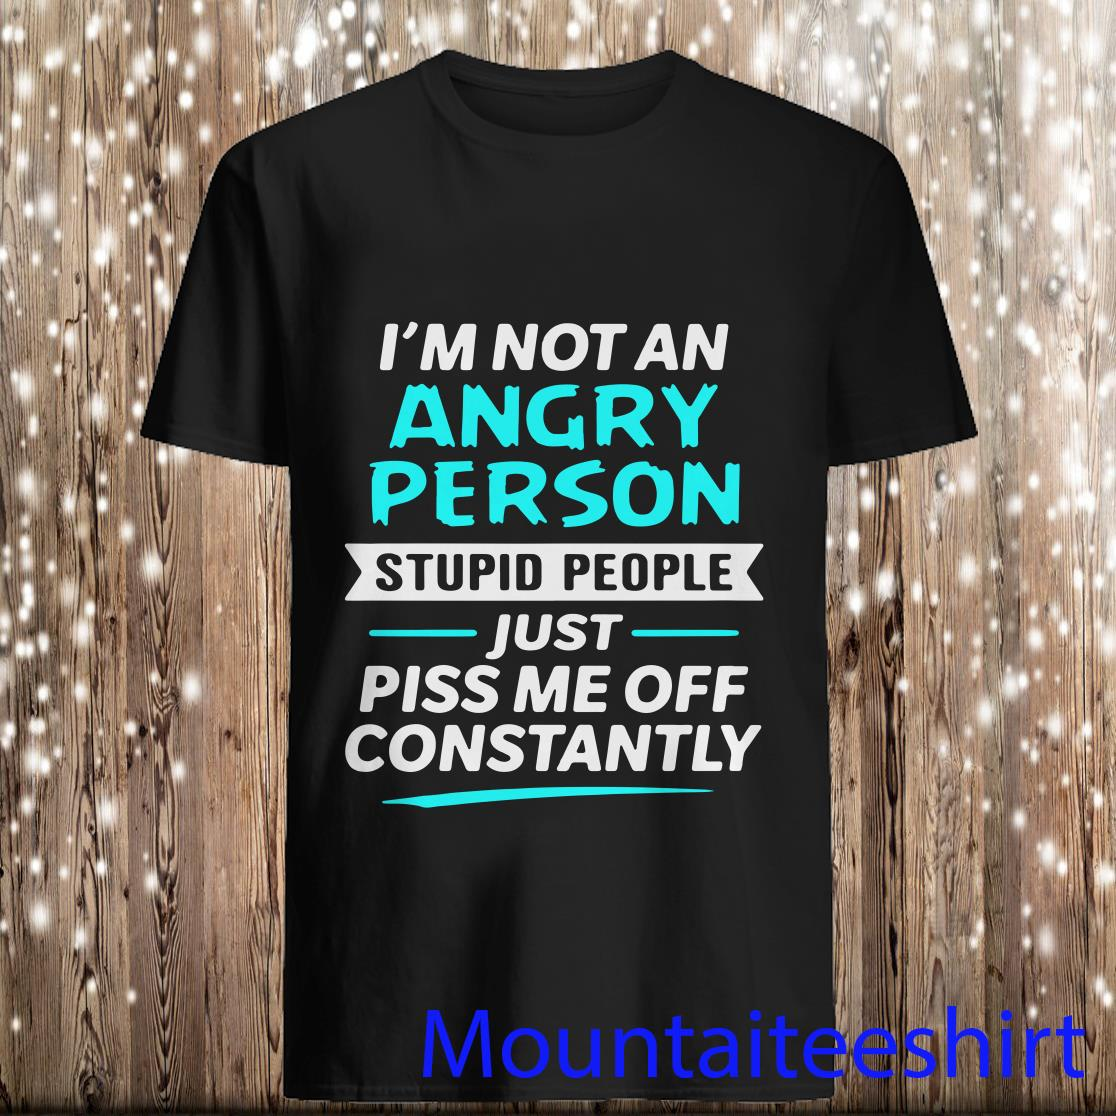 I'm Not An Angry Person Stupid People Just Piss Me Off Constantly Shirt